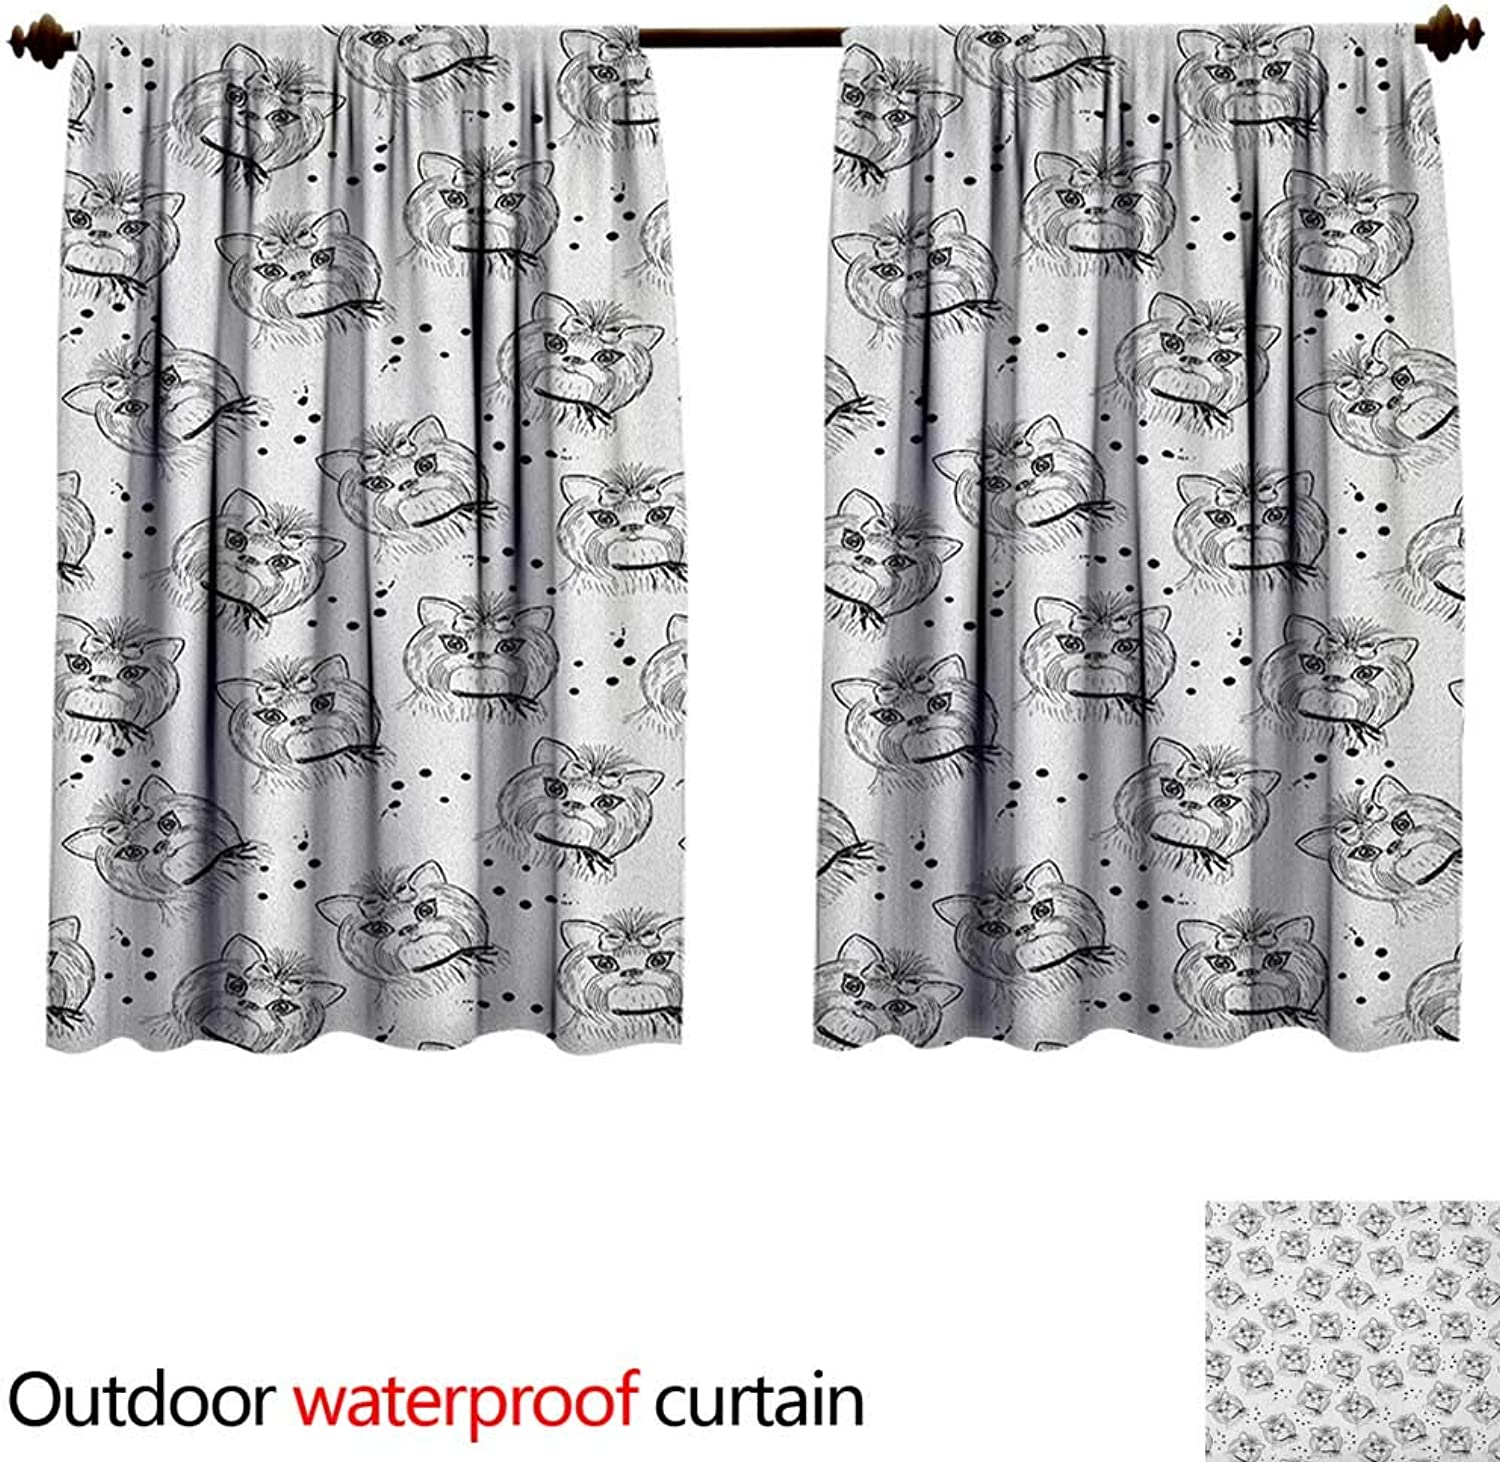 Black and WhiteAntiwaterCute Dog Pattern with Buckle and Collar Monochrome House Pet Illustration W55 x L45(140cm x 115cm) Curtain for Outdoor Black White